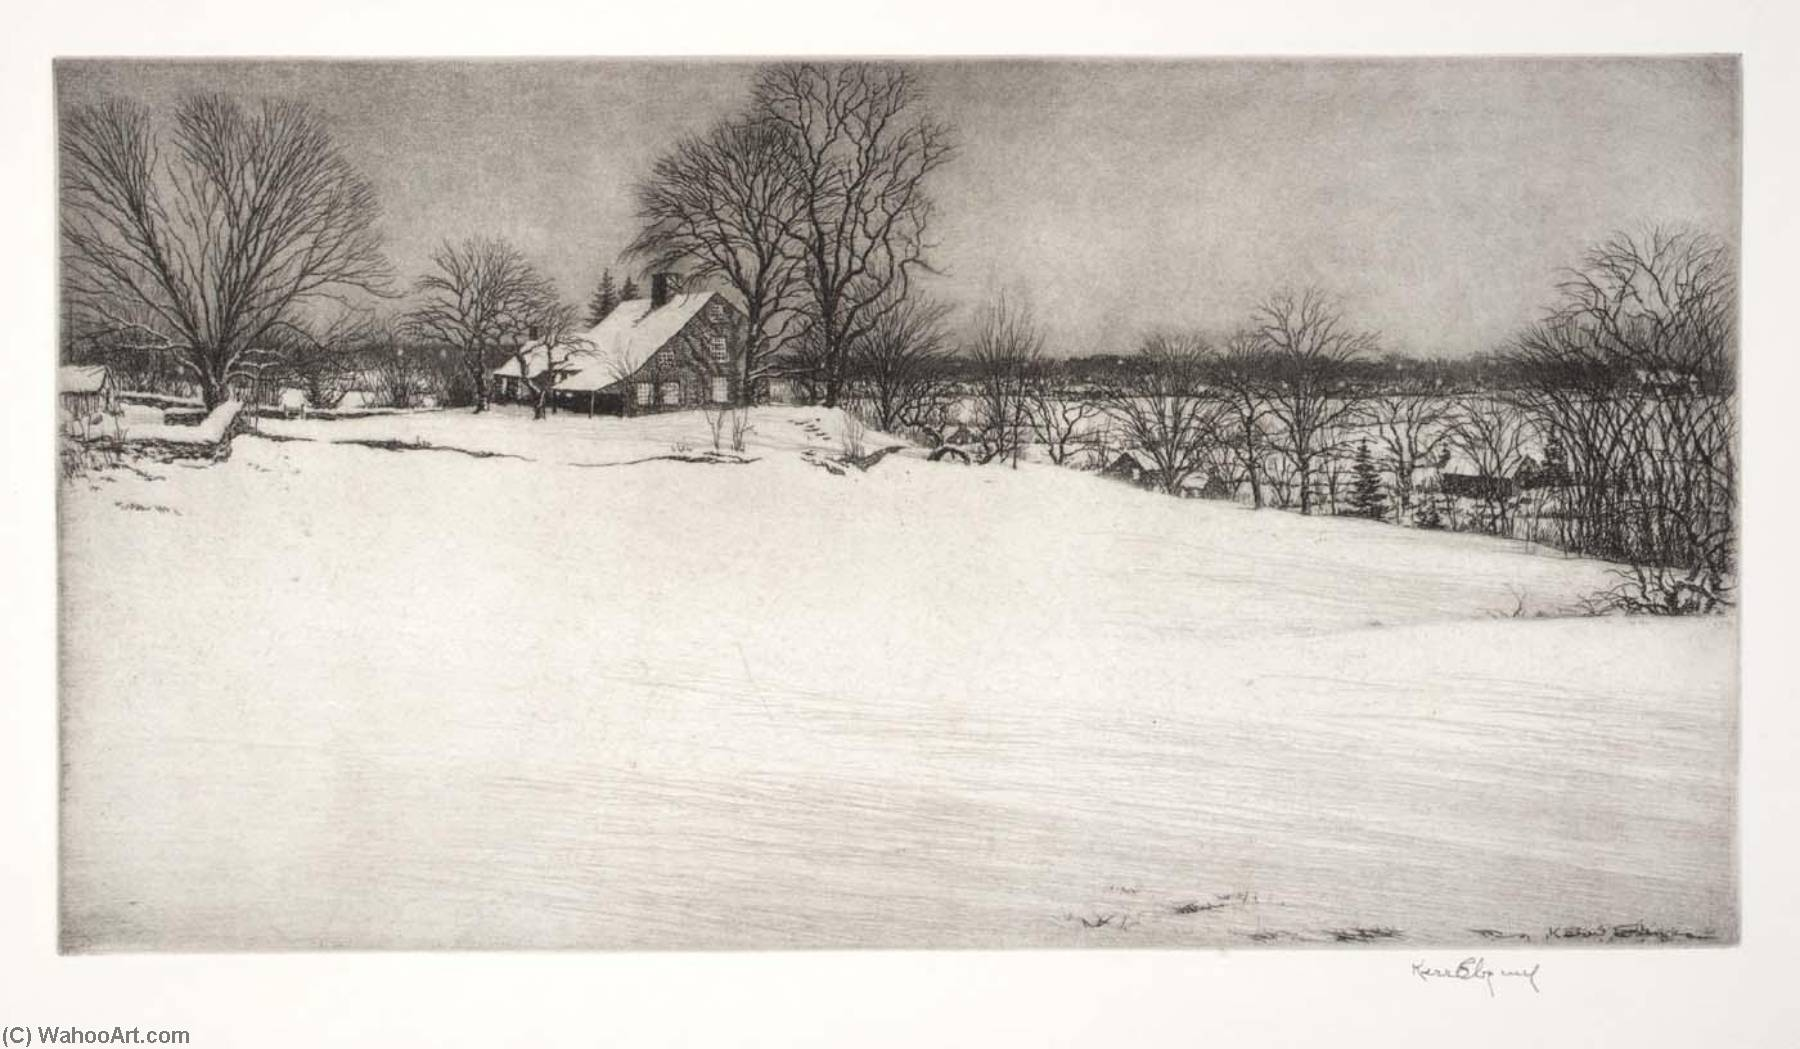 Driftway, Evening, 1932 by Kerr Eby | WahooArt.com